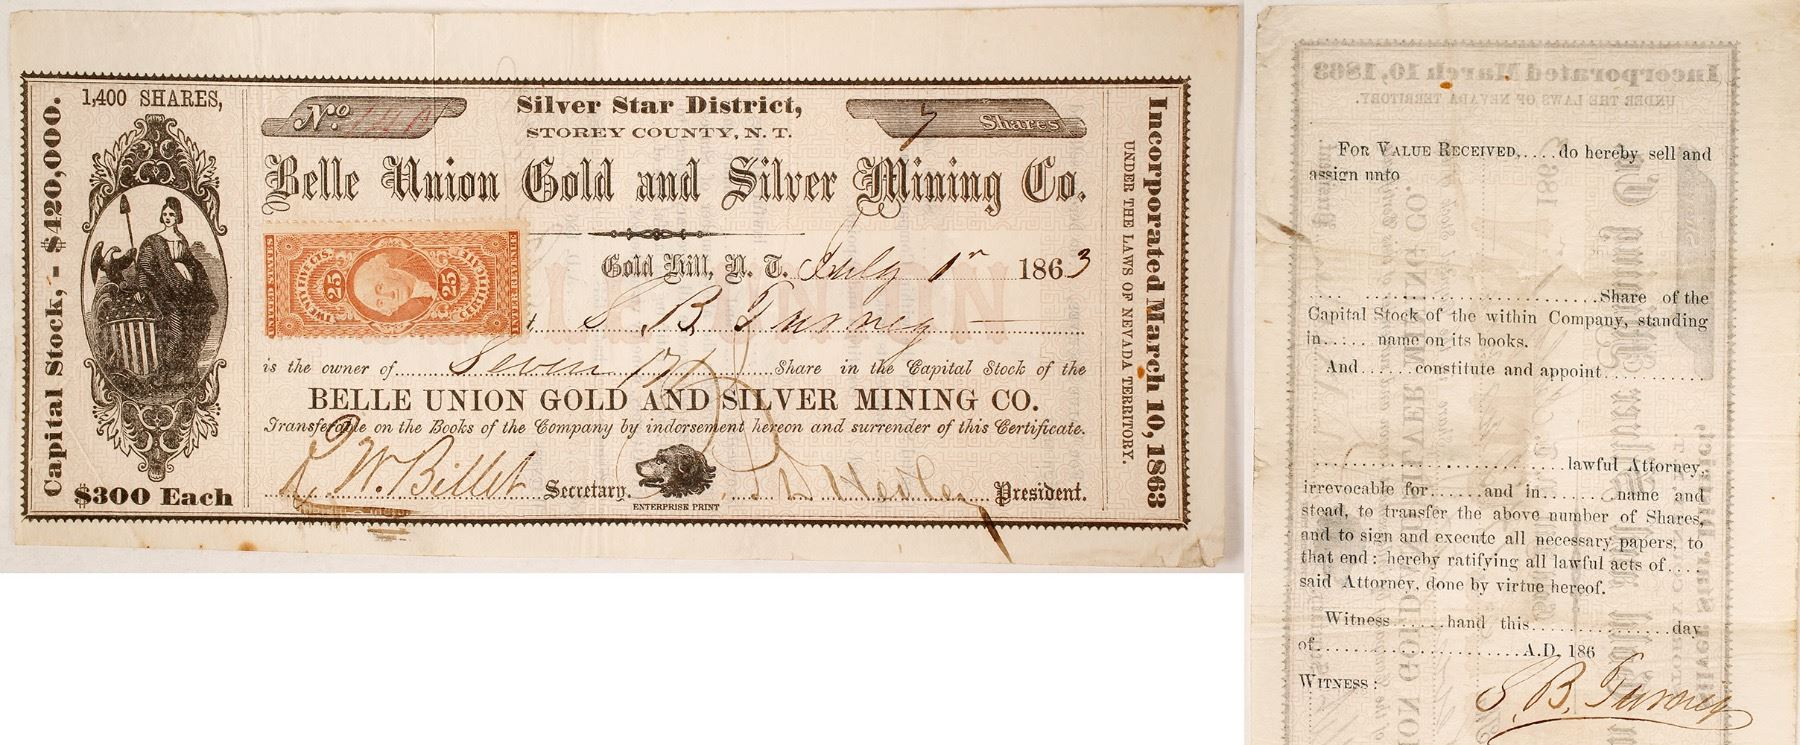 Belle Union Gold Silver Mining Co Stock Certificate Silver Star